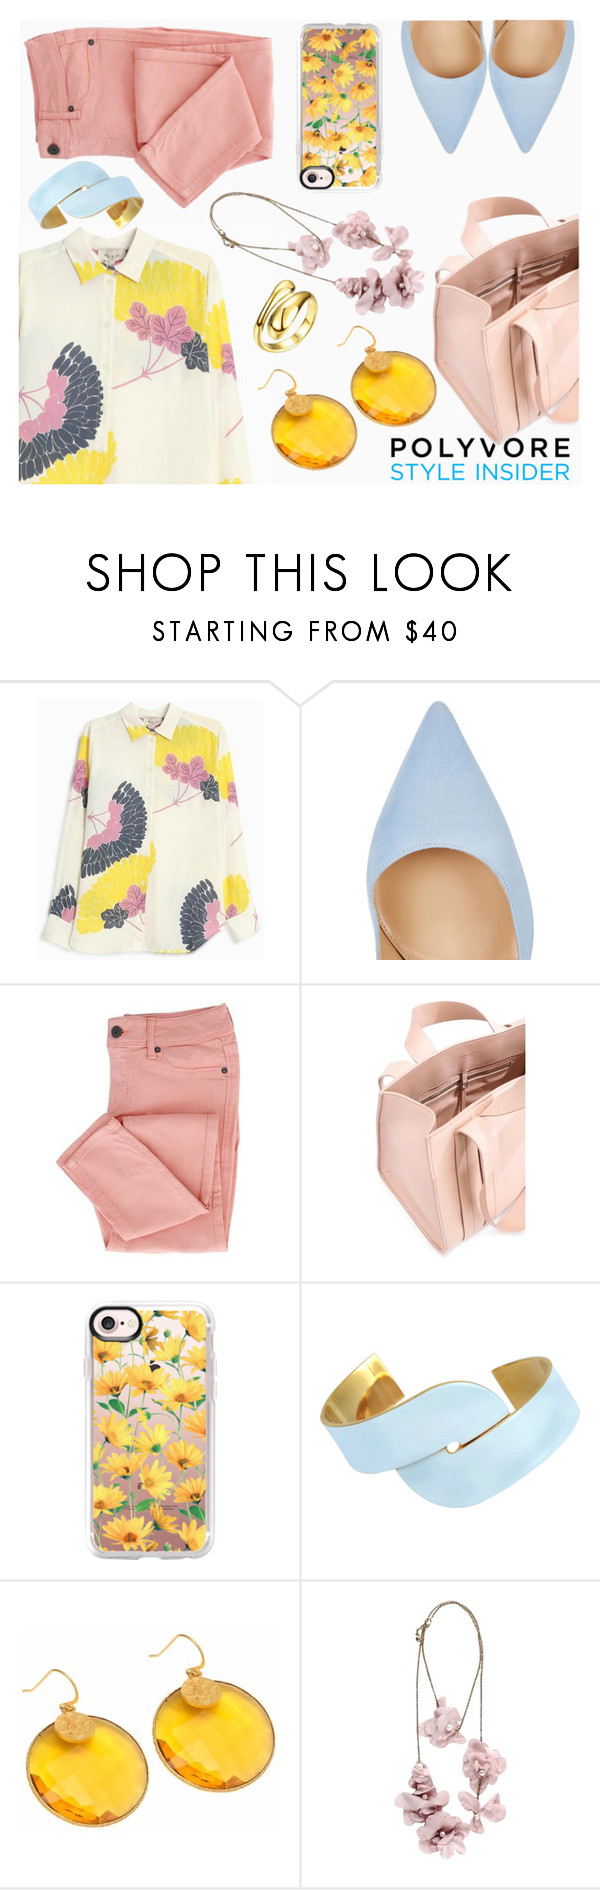 """""""Something Yellow"""" by espiecent ❤ liked on Polyvore featuring Paul & Joe, Gianvito Rossi, Corto Moltedo, Casetify, Uncommon Matters, Carousel Jewels, Lanvin, Riakoob and chic"""